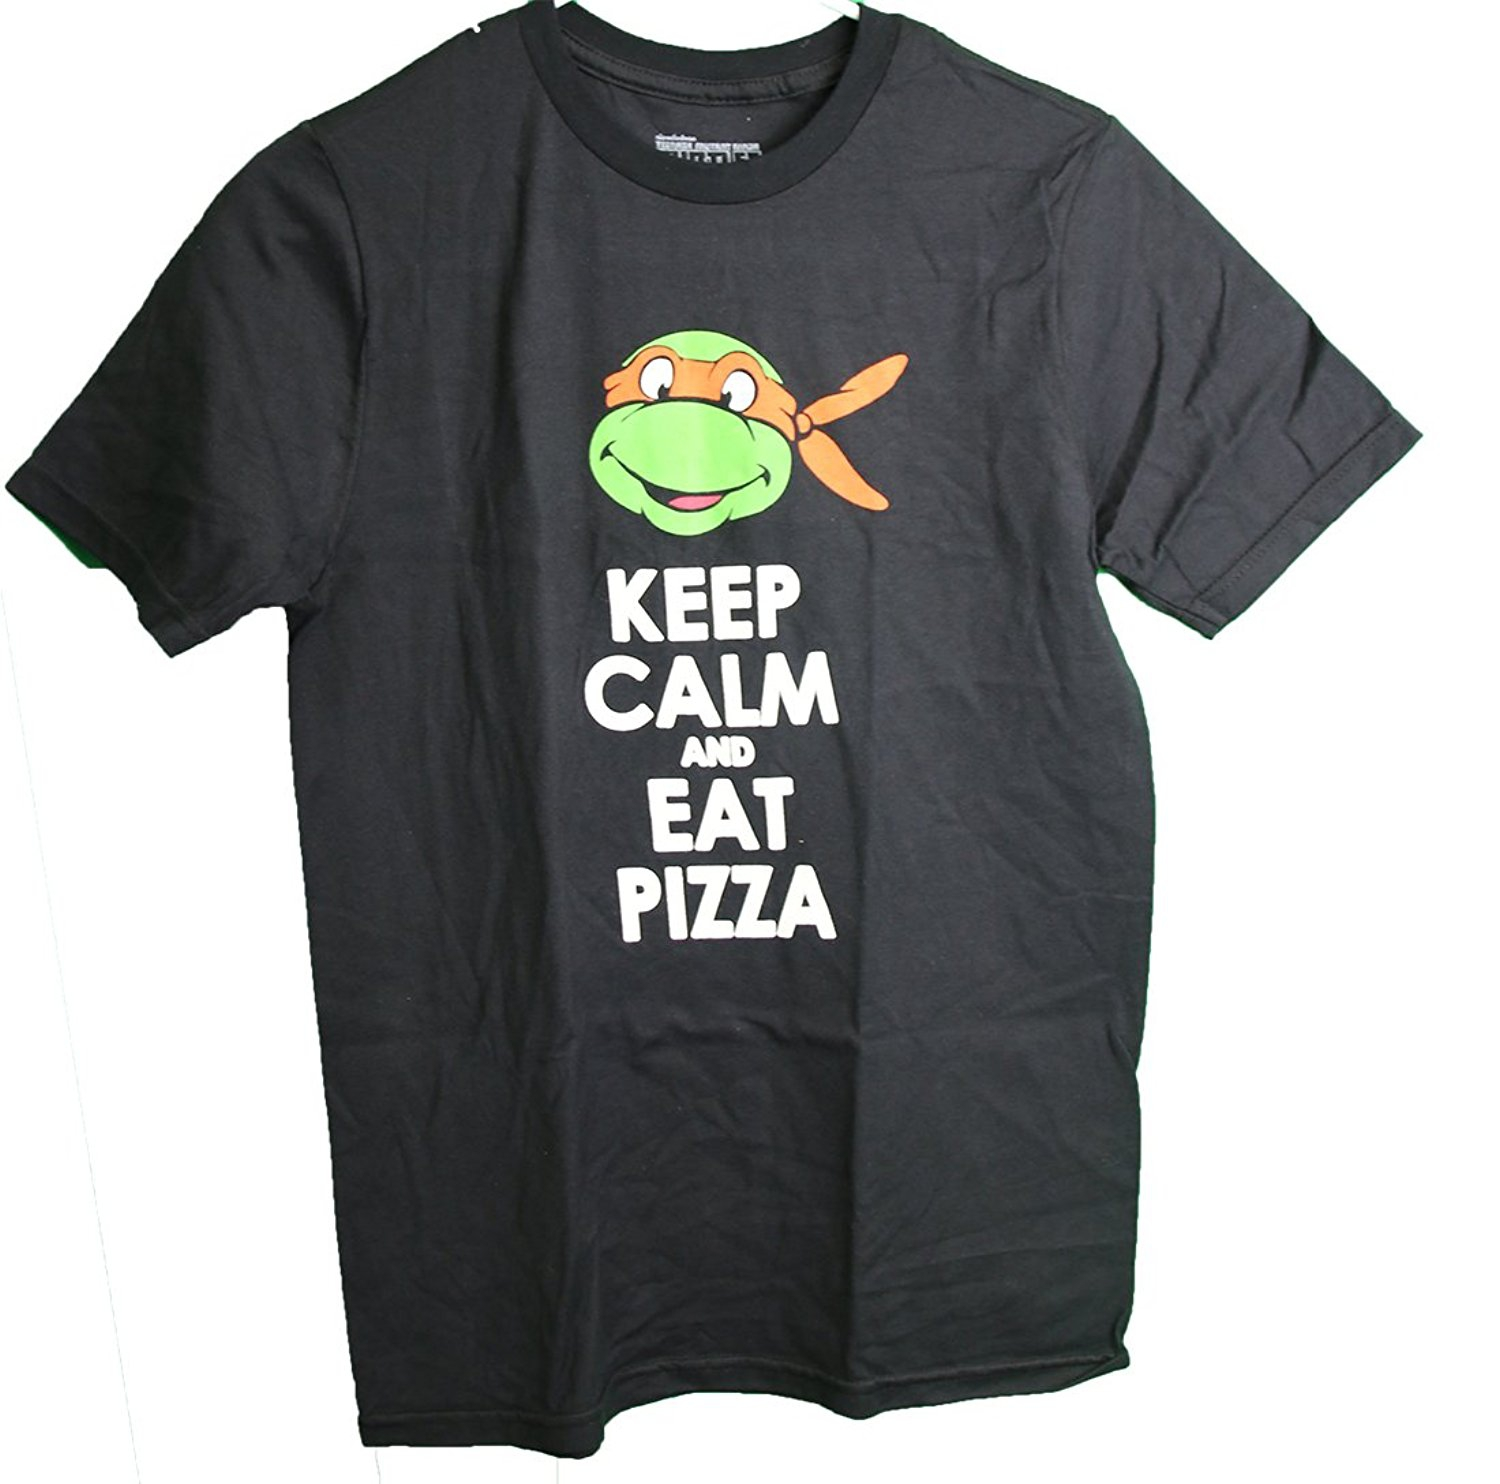 Teenage Mutant Ninja Turtles Michelangelo Keep Calm Eat Pizza Youth Boy's T-Shirt